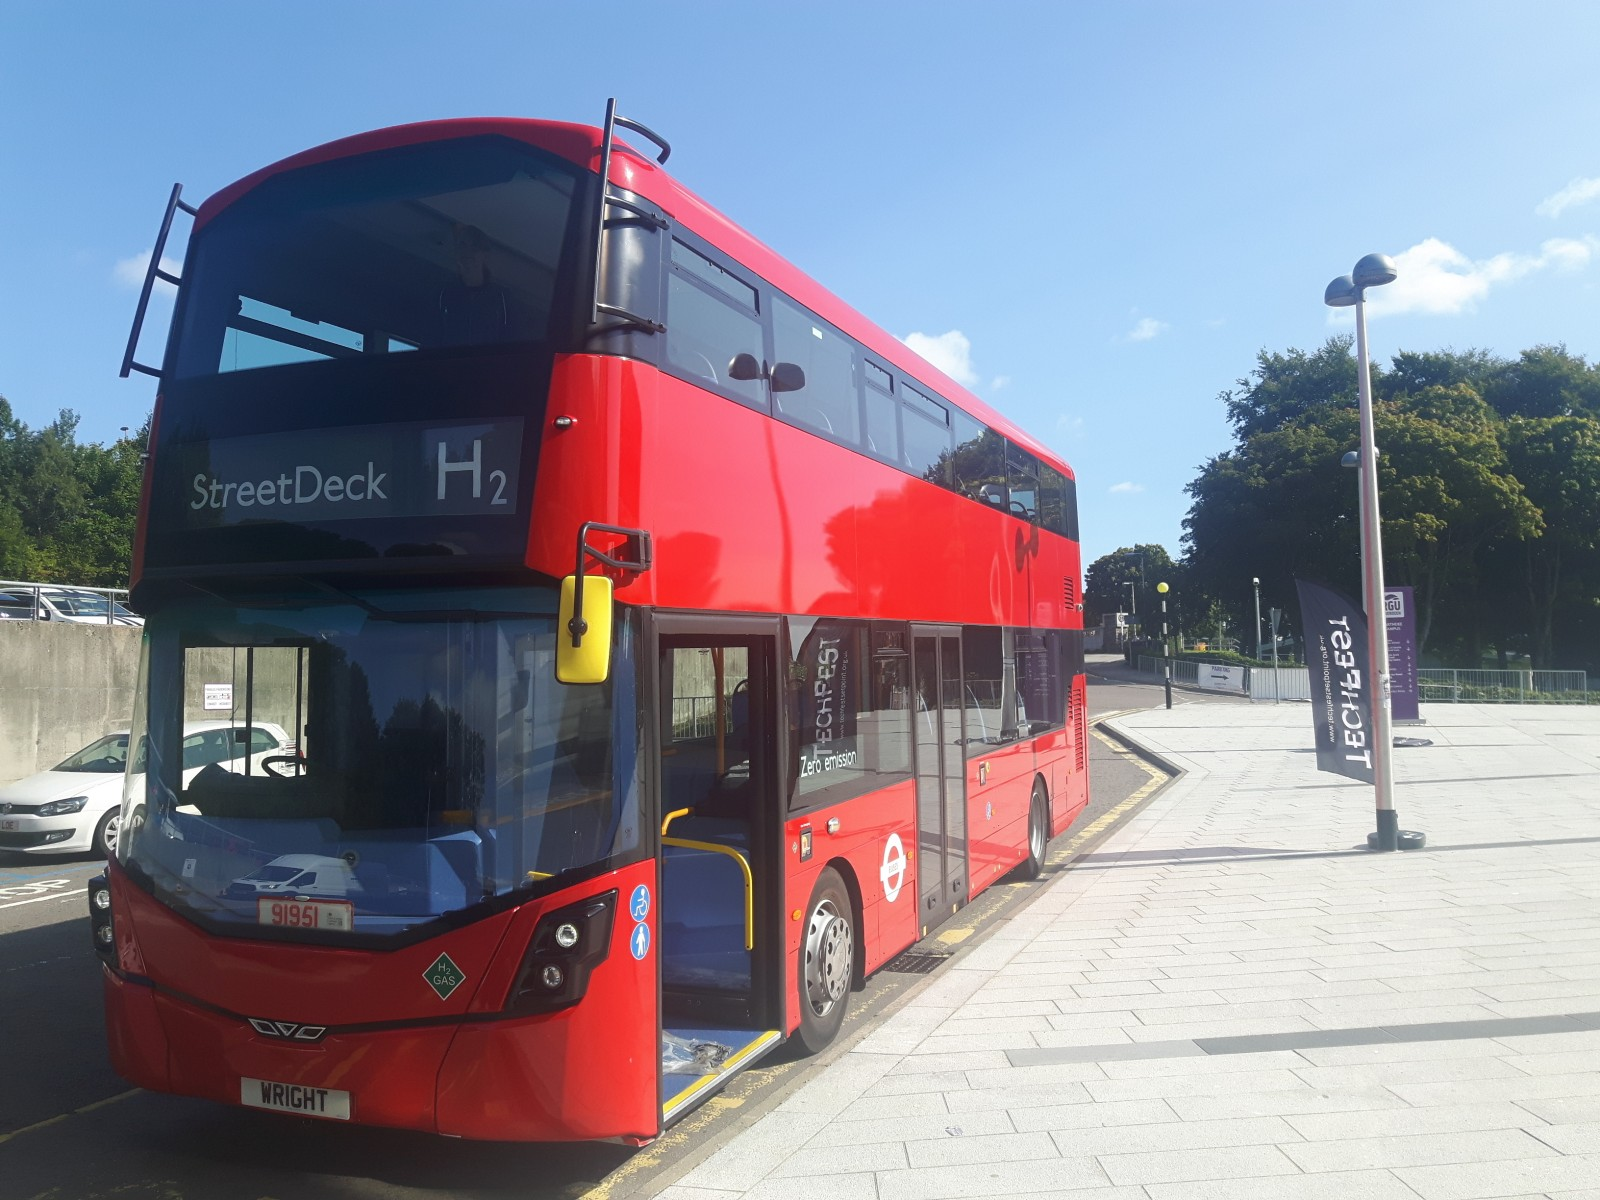 Hydrogen double decker bus pic